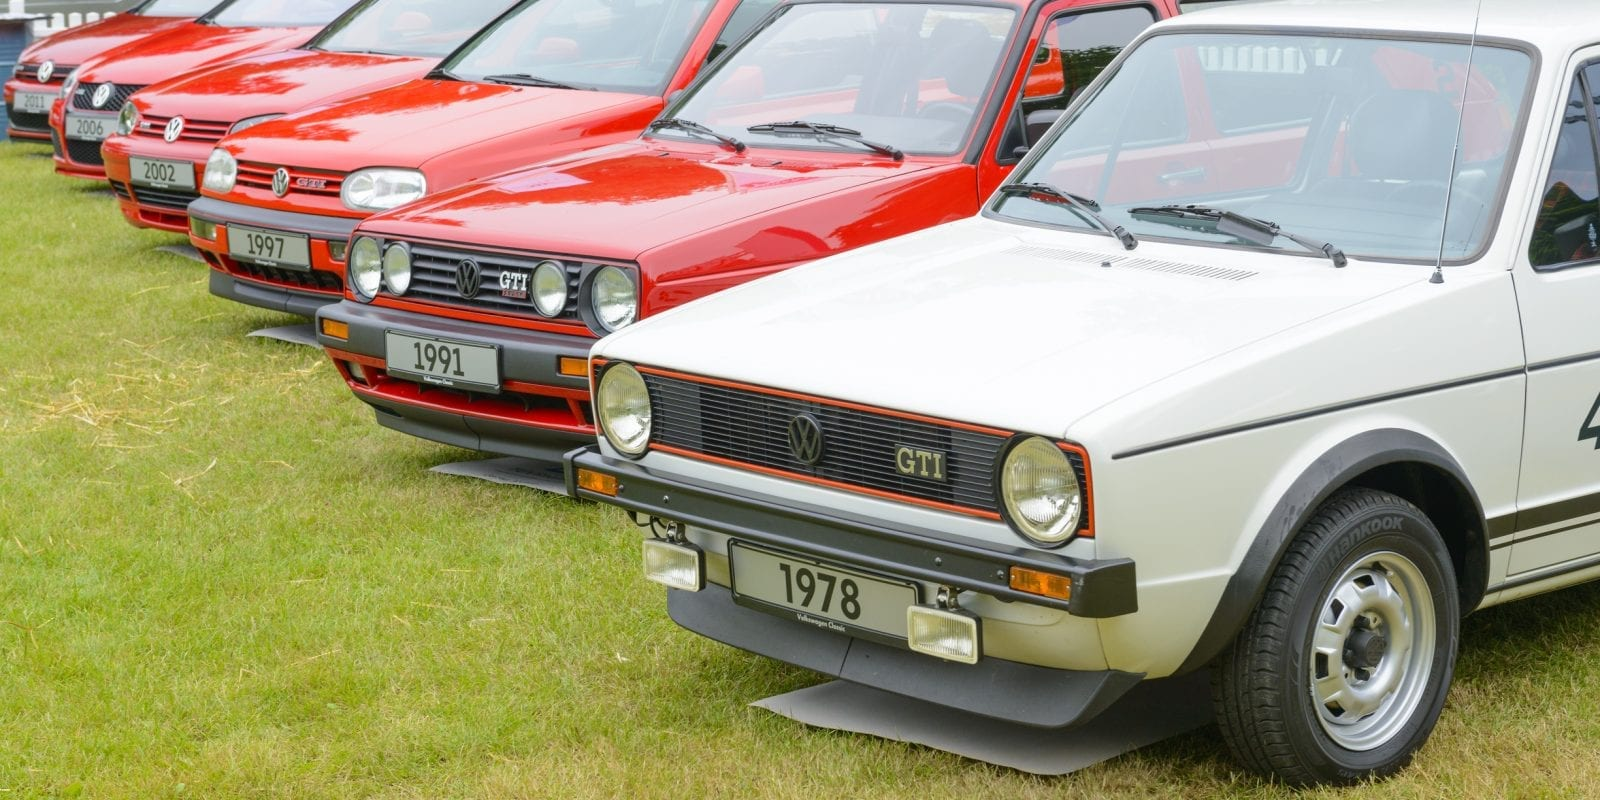 The Best Car Shows in the North East 2017